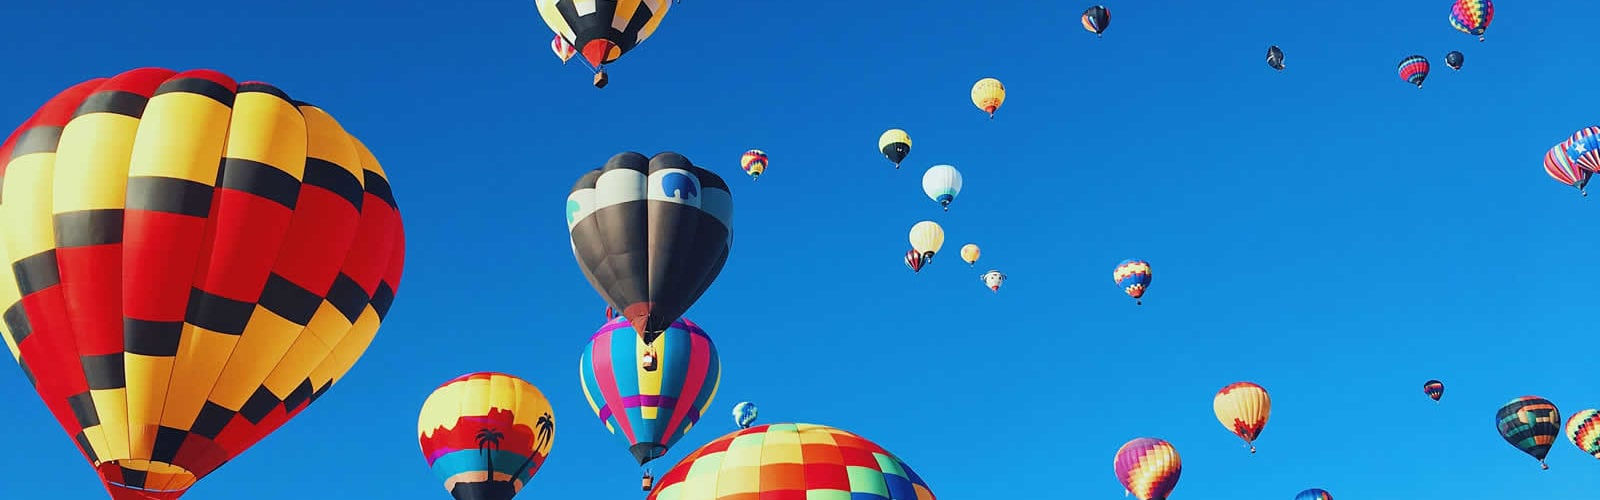 vol-ballon-montgolfiere-atlanta-usa-une